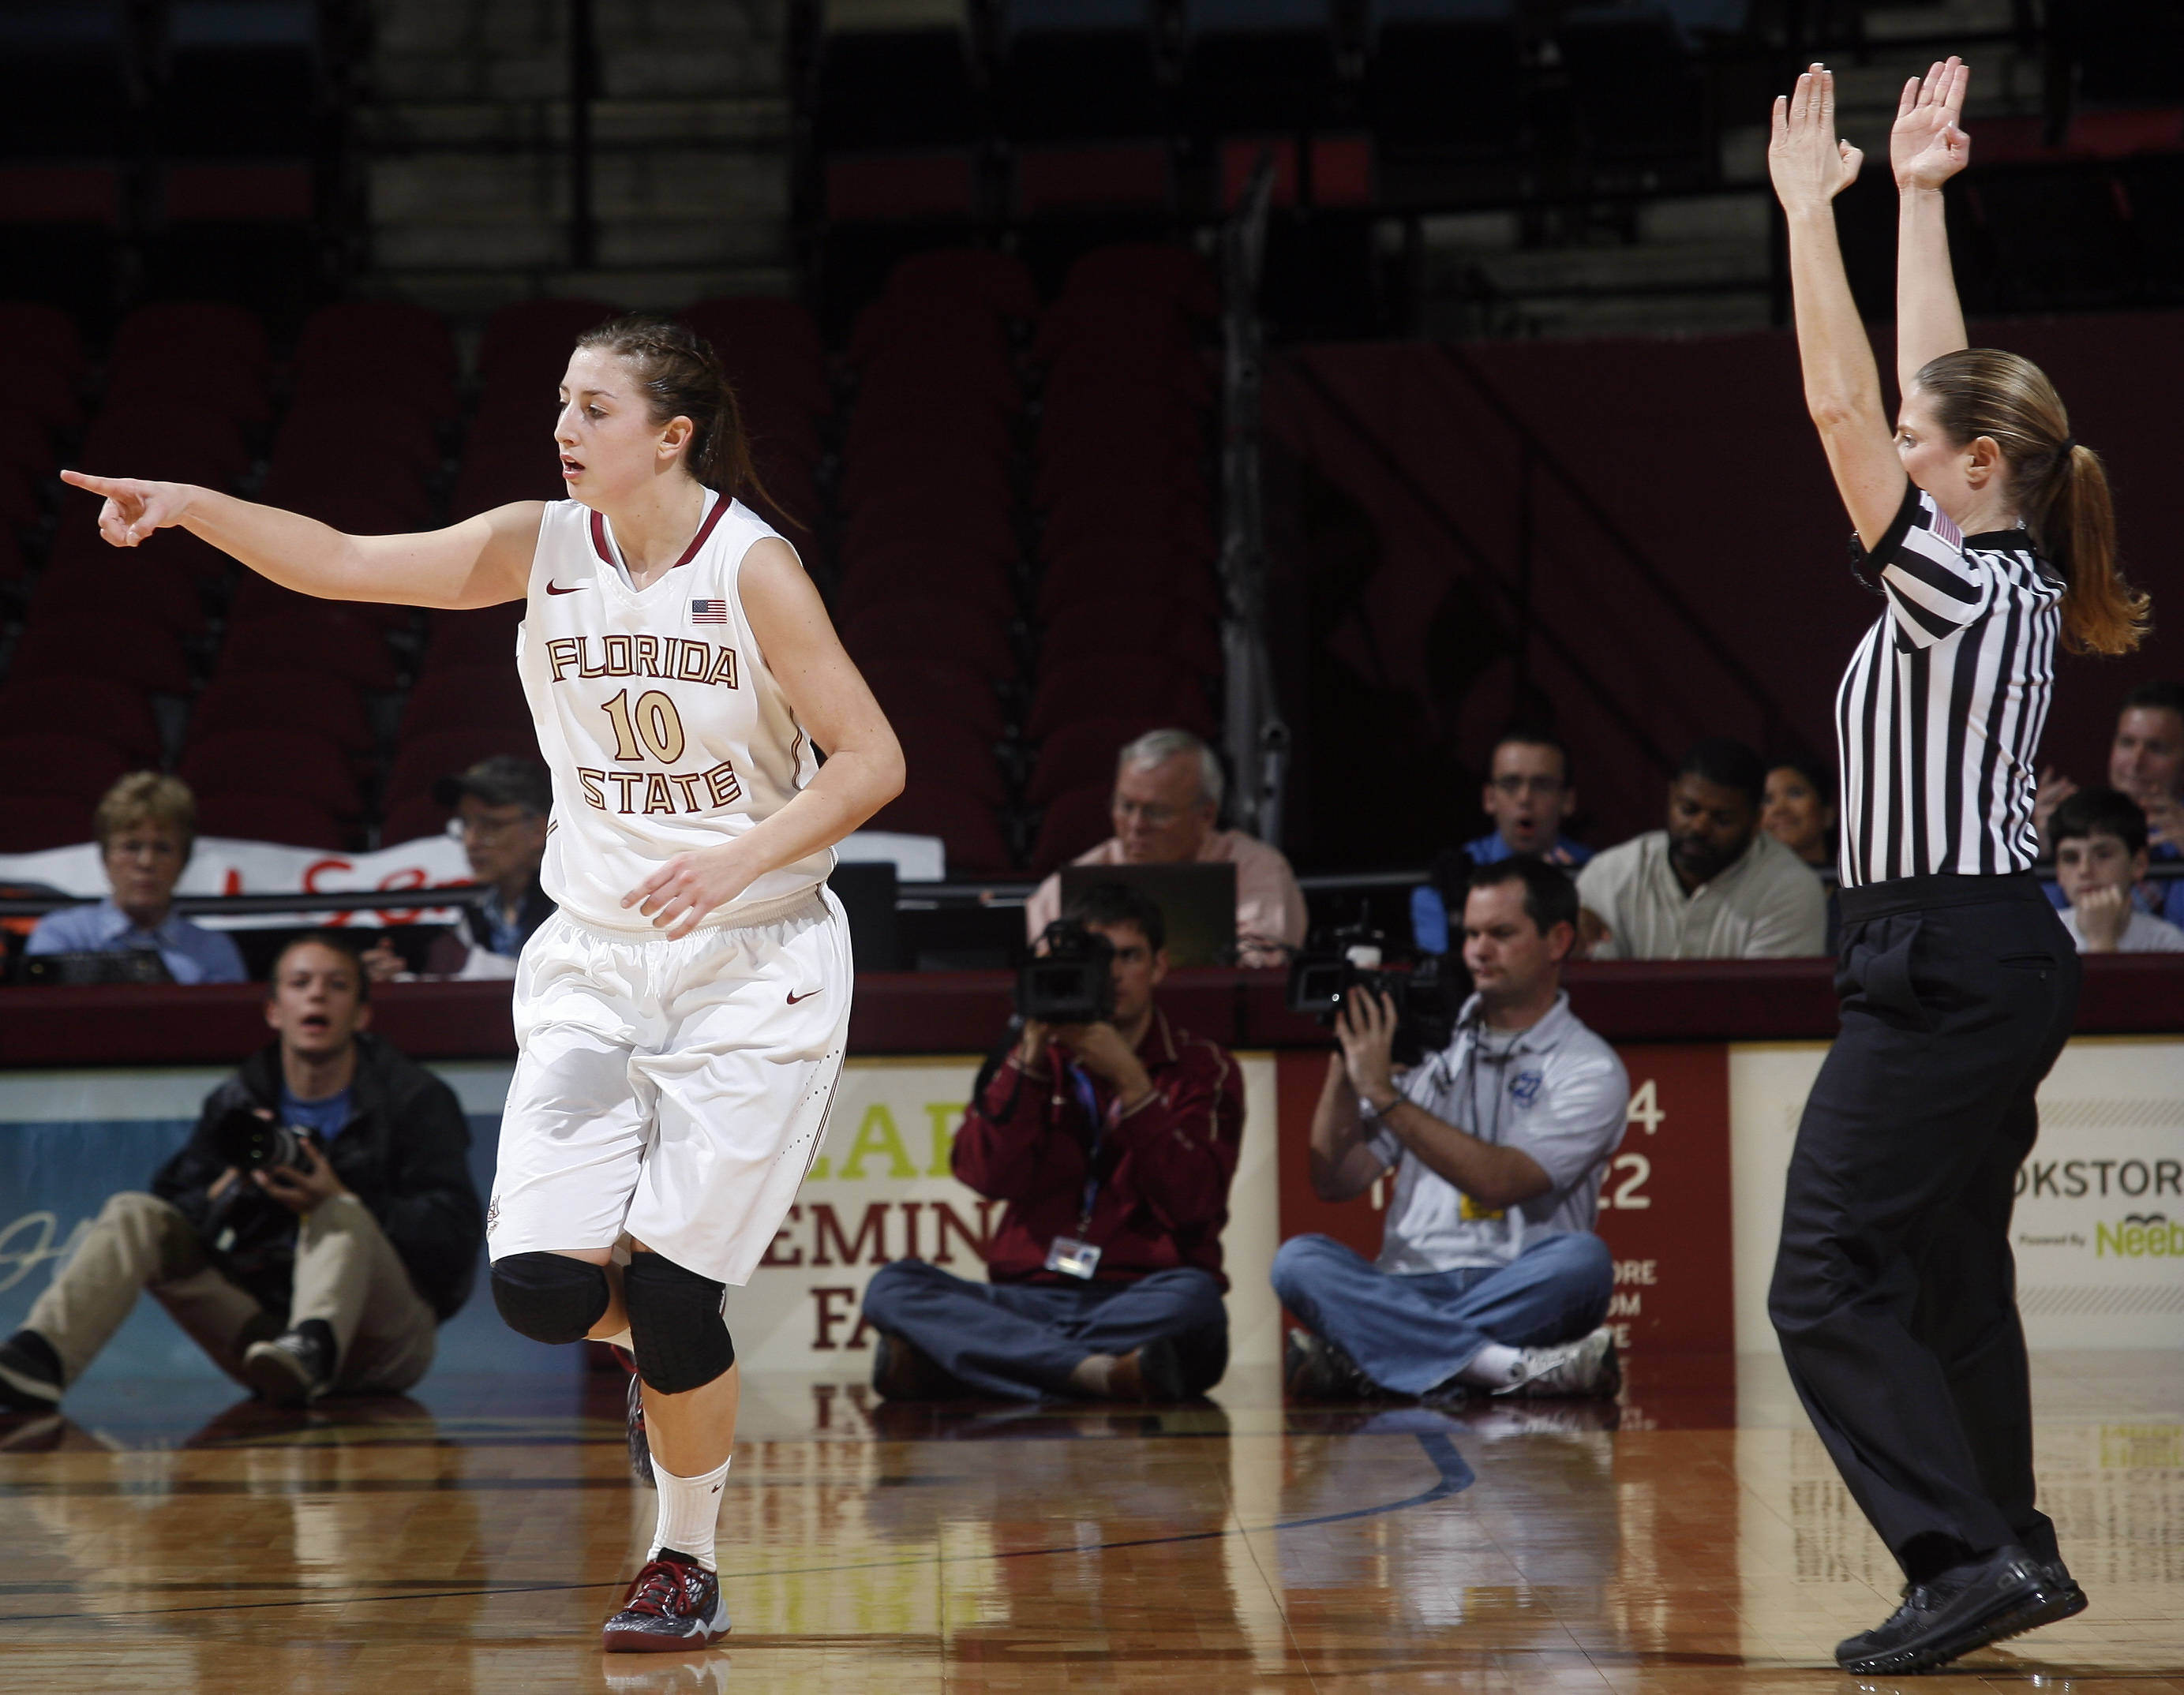 Florida State guard Leonor Rodriguez (10) reacts after hitting a three-point basket in the first half. (AP Photo/Phil Sears)